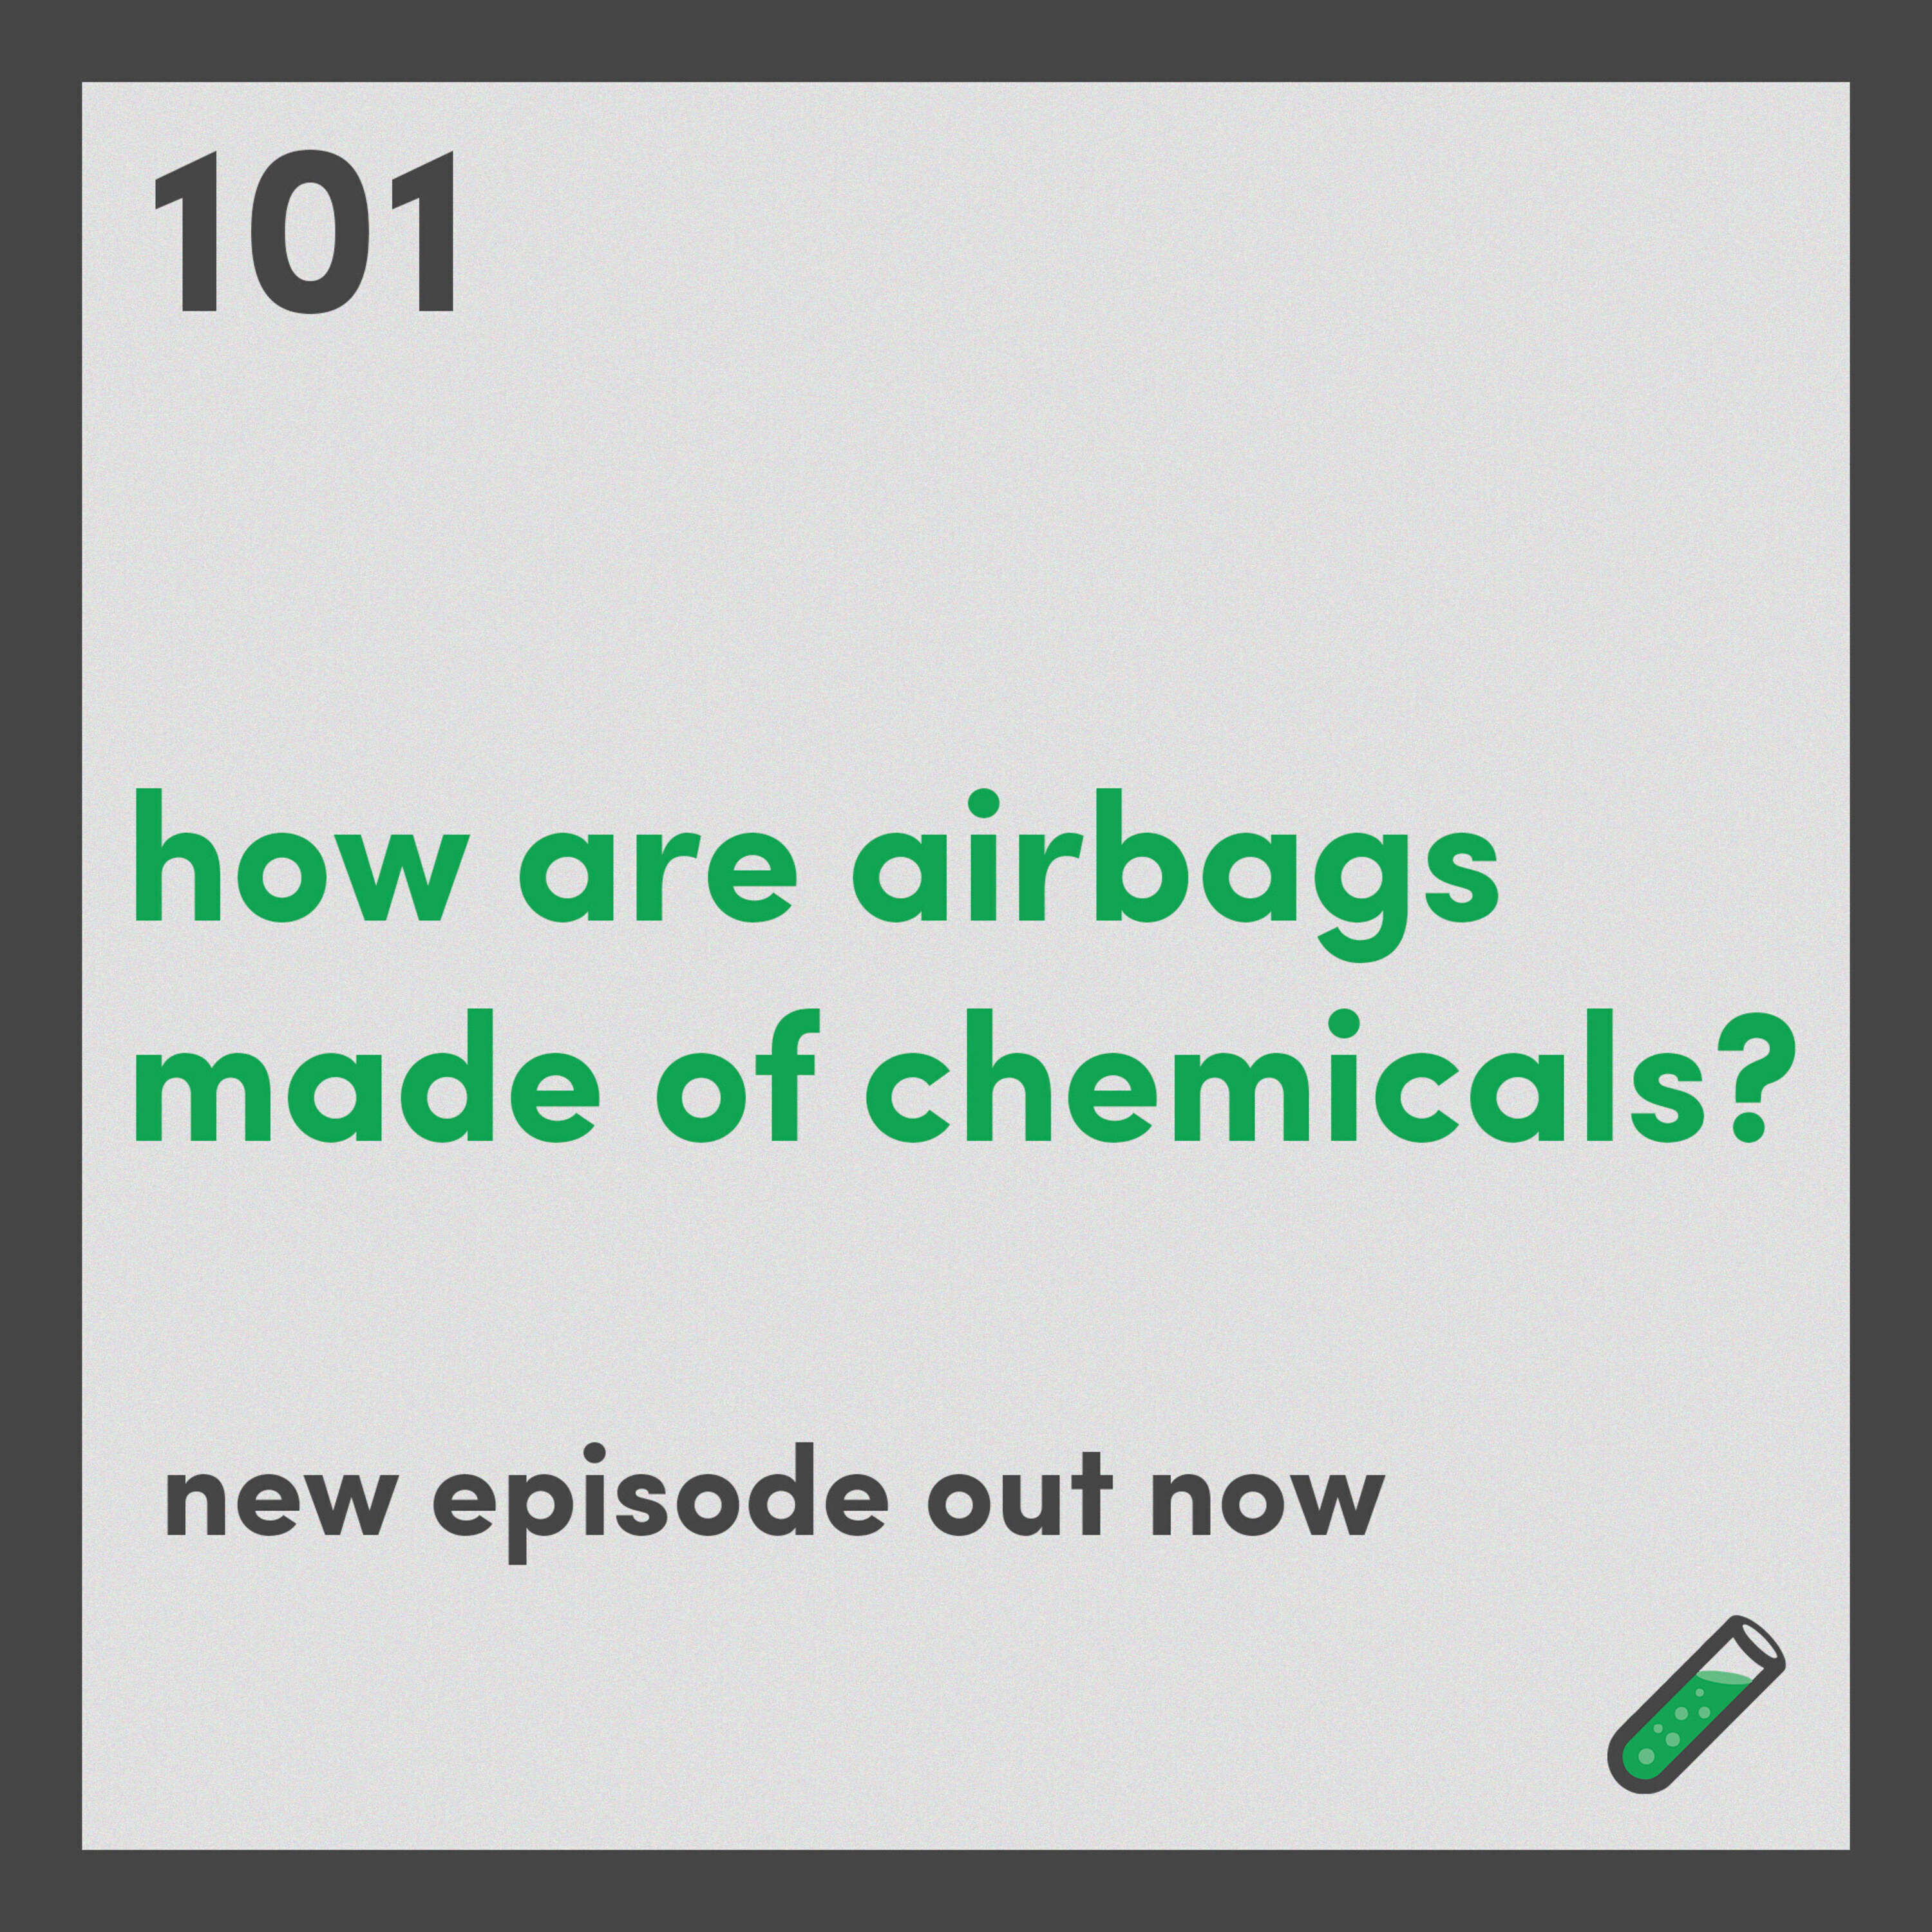 How are airbags made of chemicals?